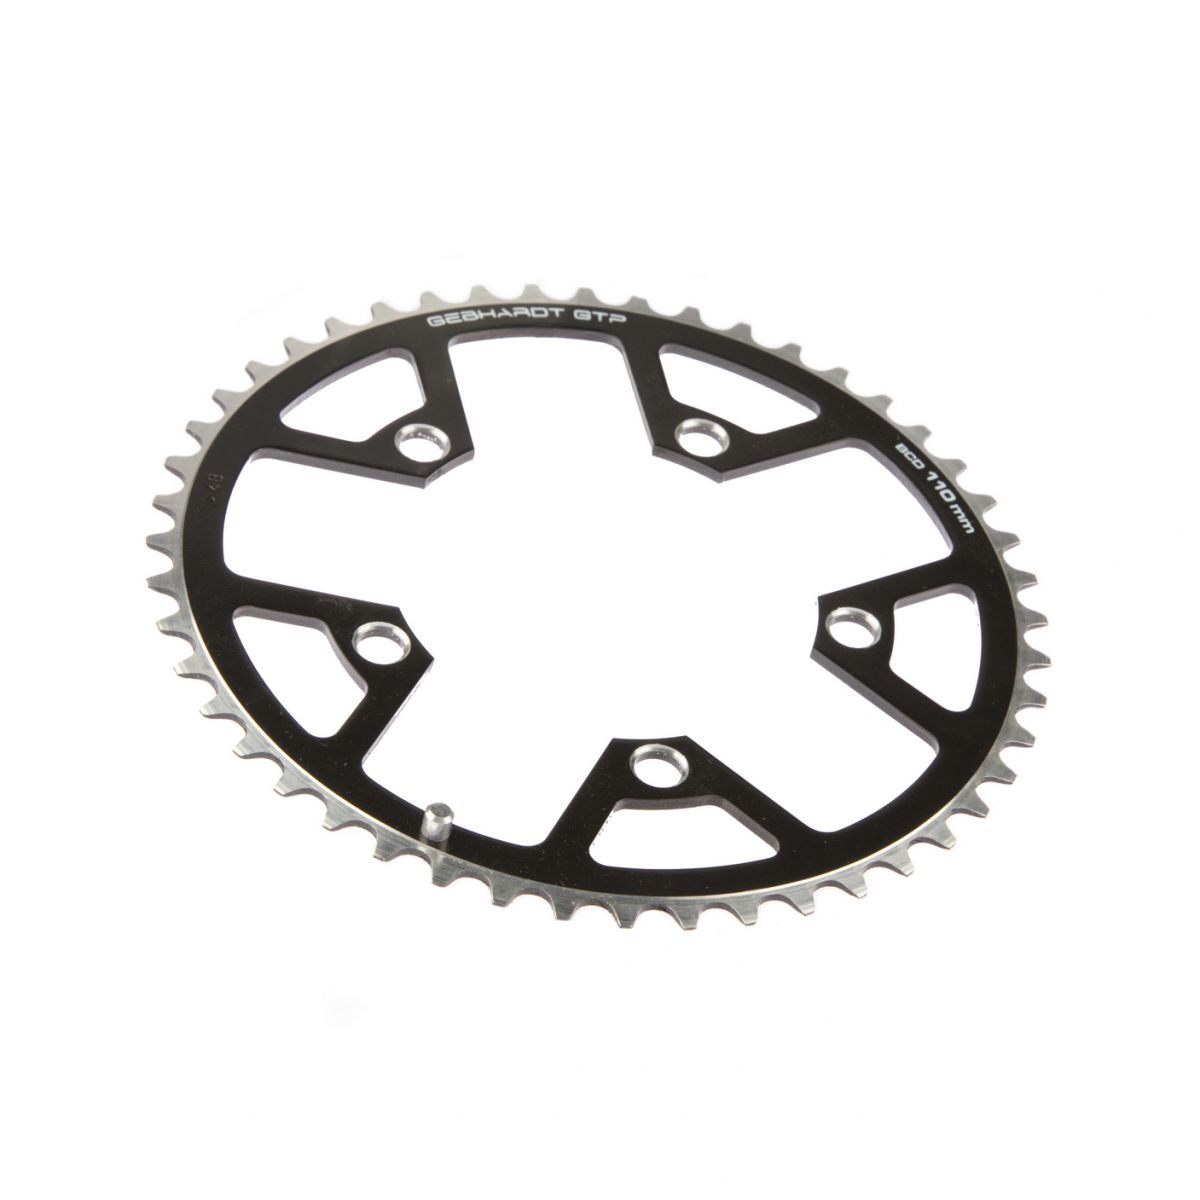 gebhardt chainring cover rock ring classic bcd 110 mm 5hole 48t black